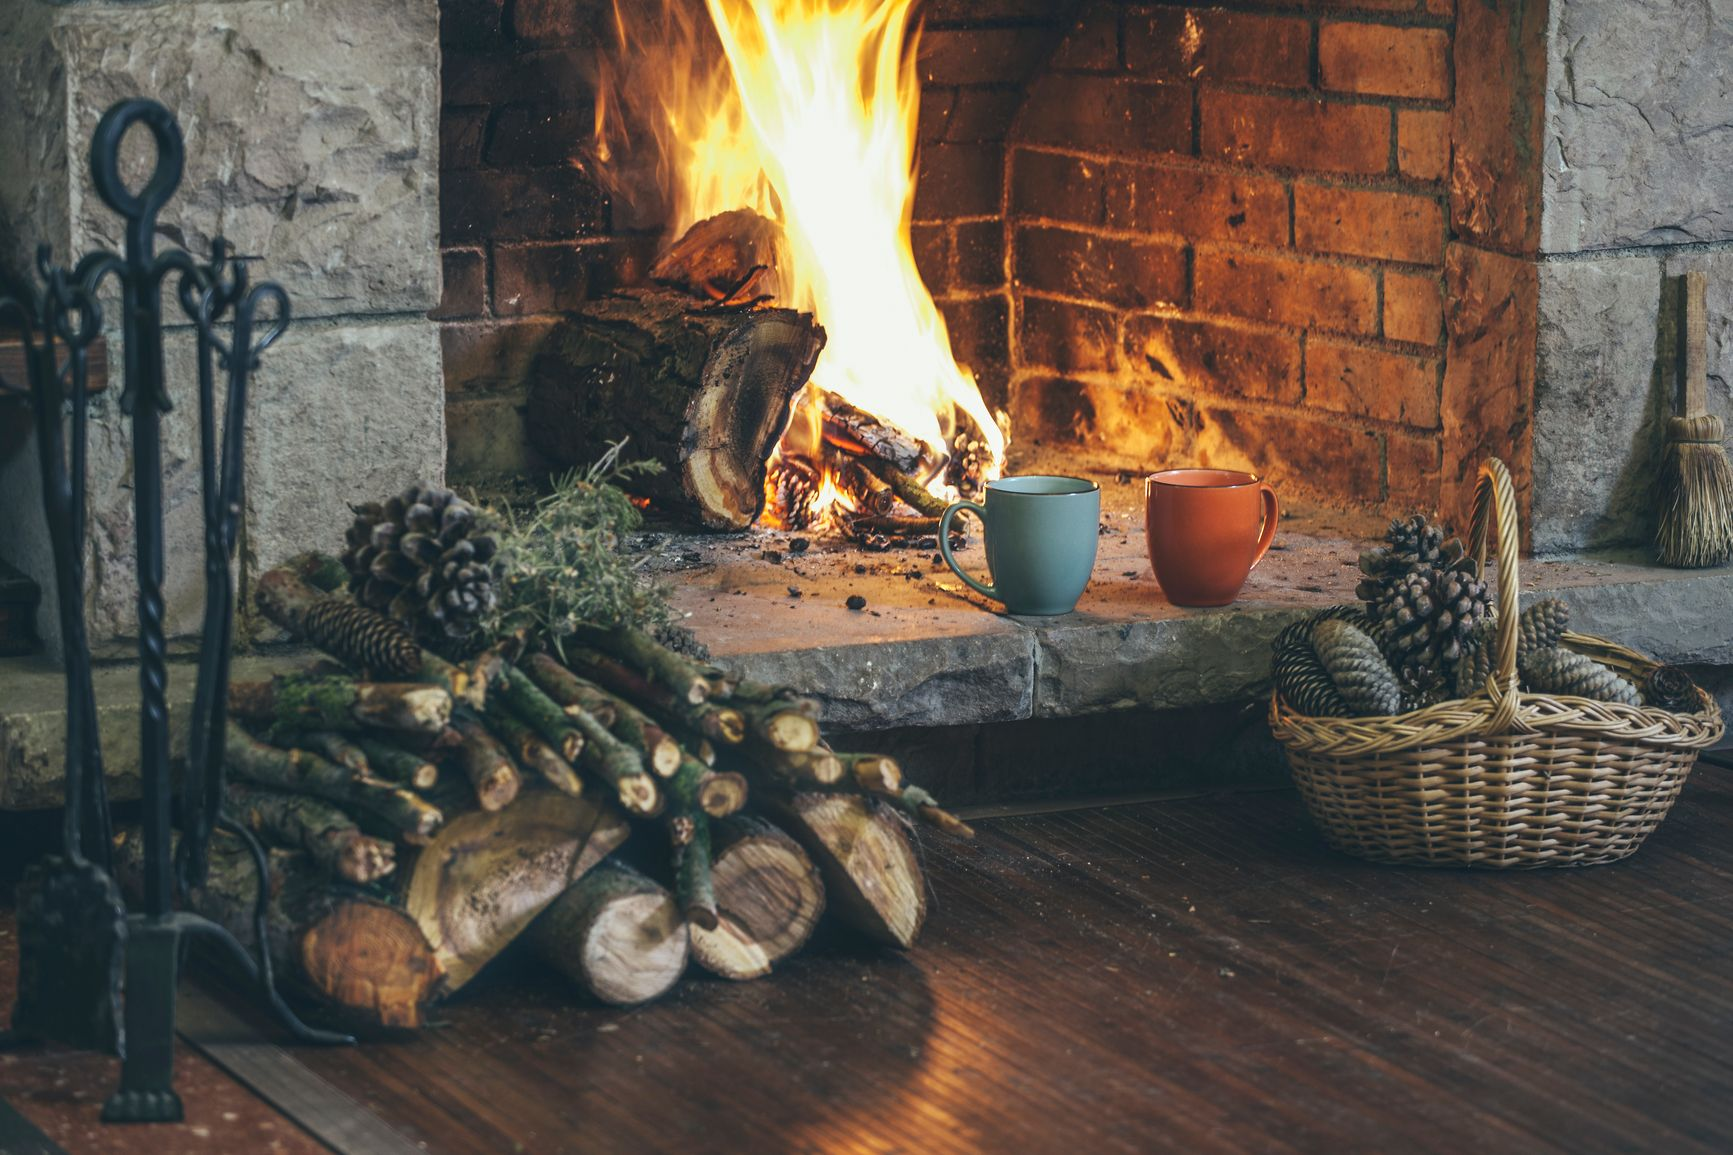 What Is Hygge? Everything You Need To Know About The Danish Lifestyle Trend